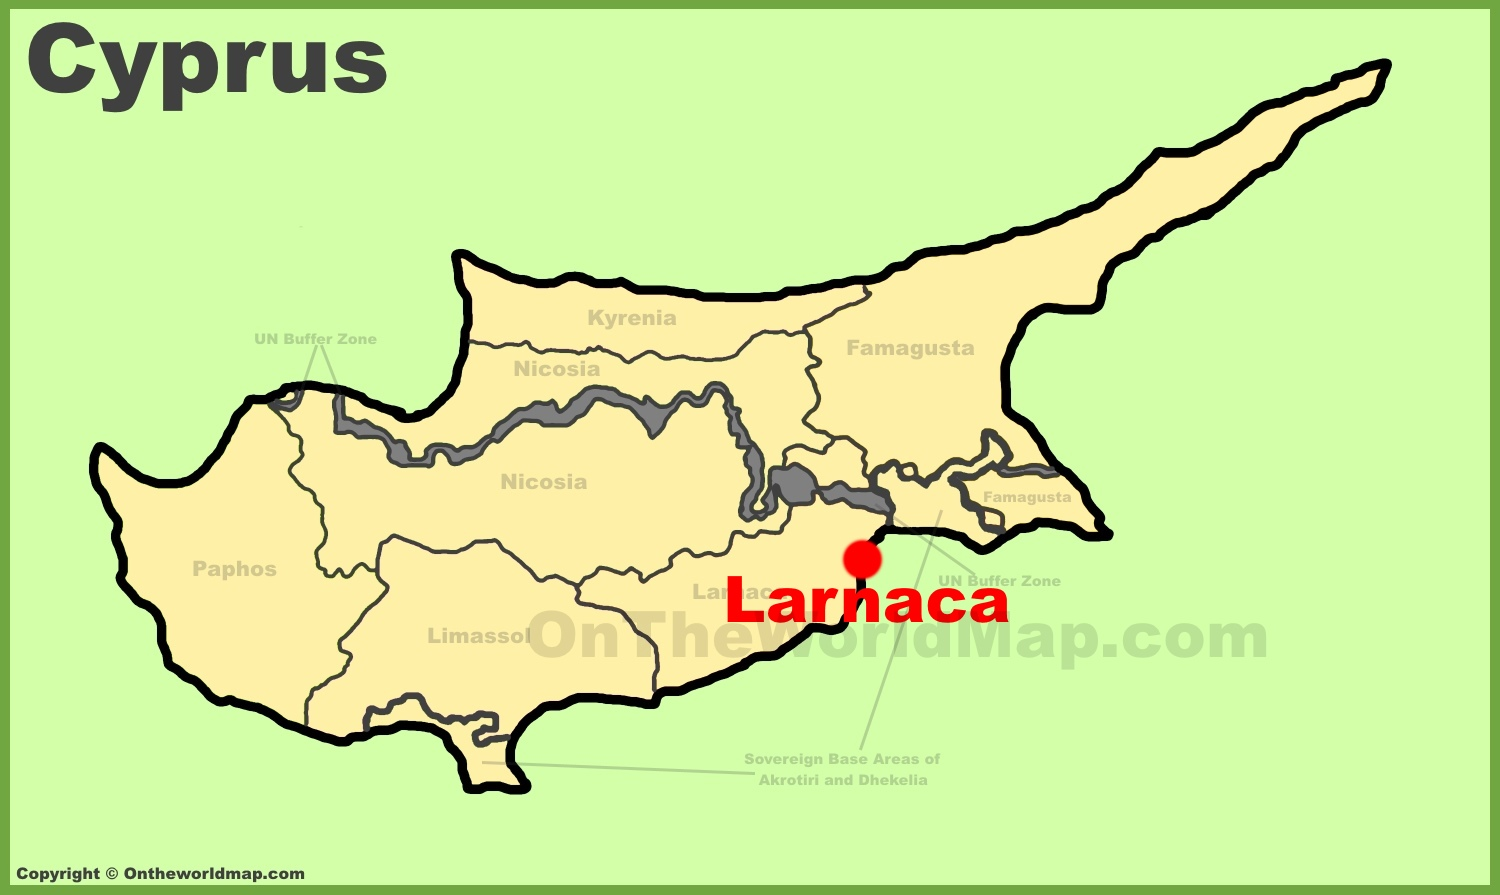 Larnaca location on the Cyprus map